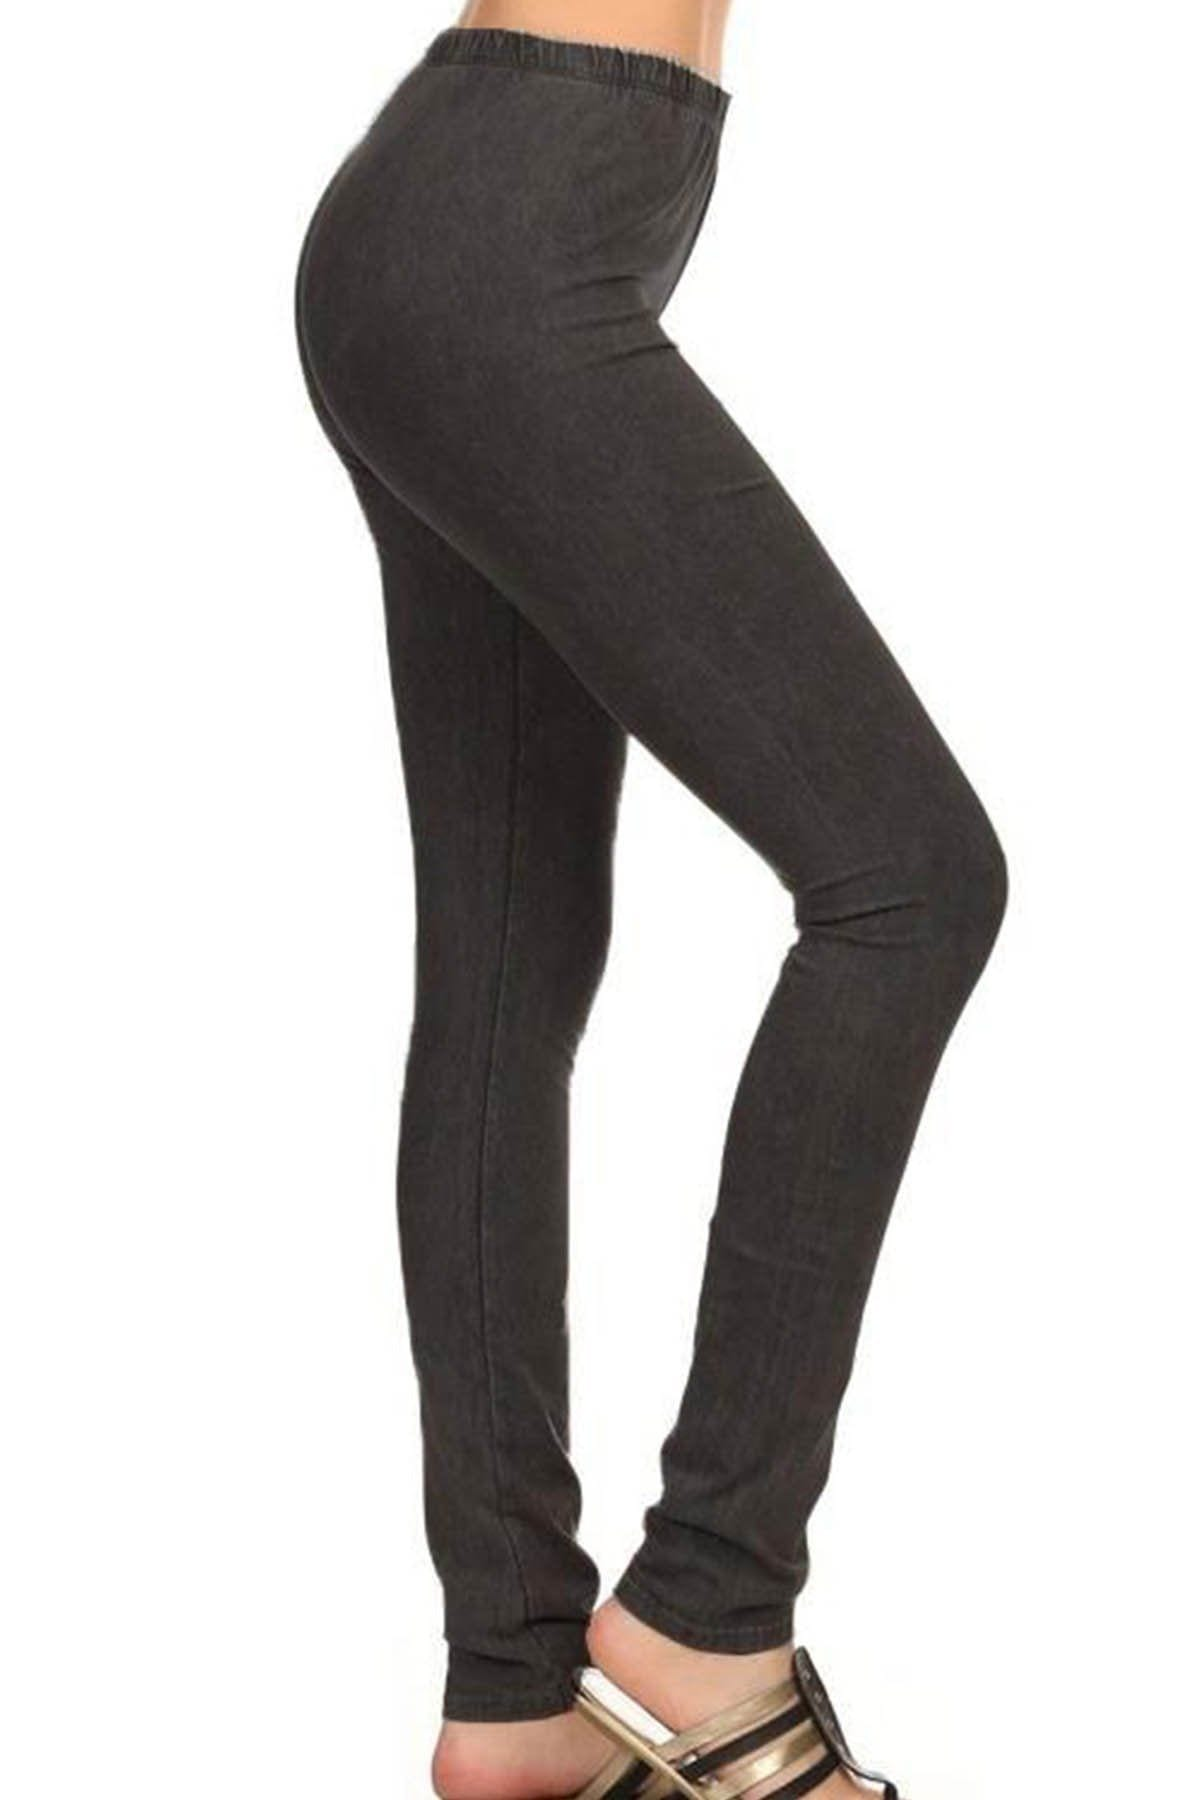 All American Skinnies - Smokey Bottoms dark ash grey